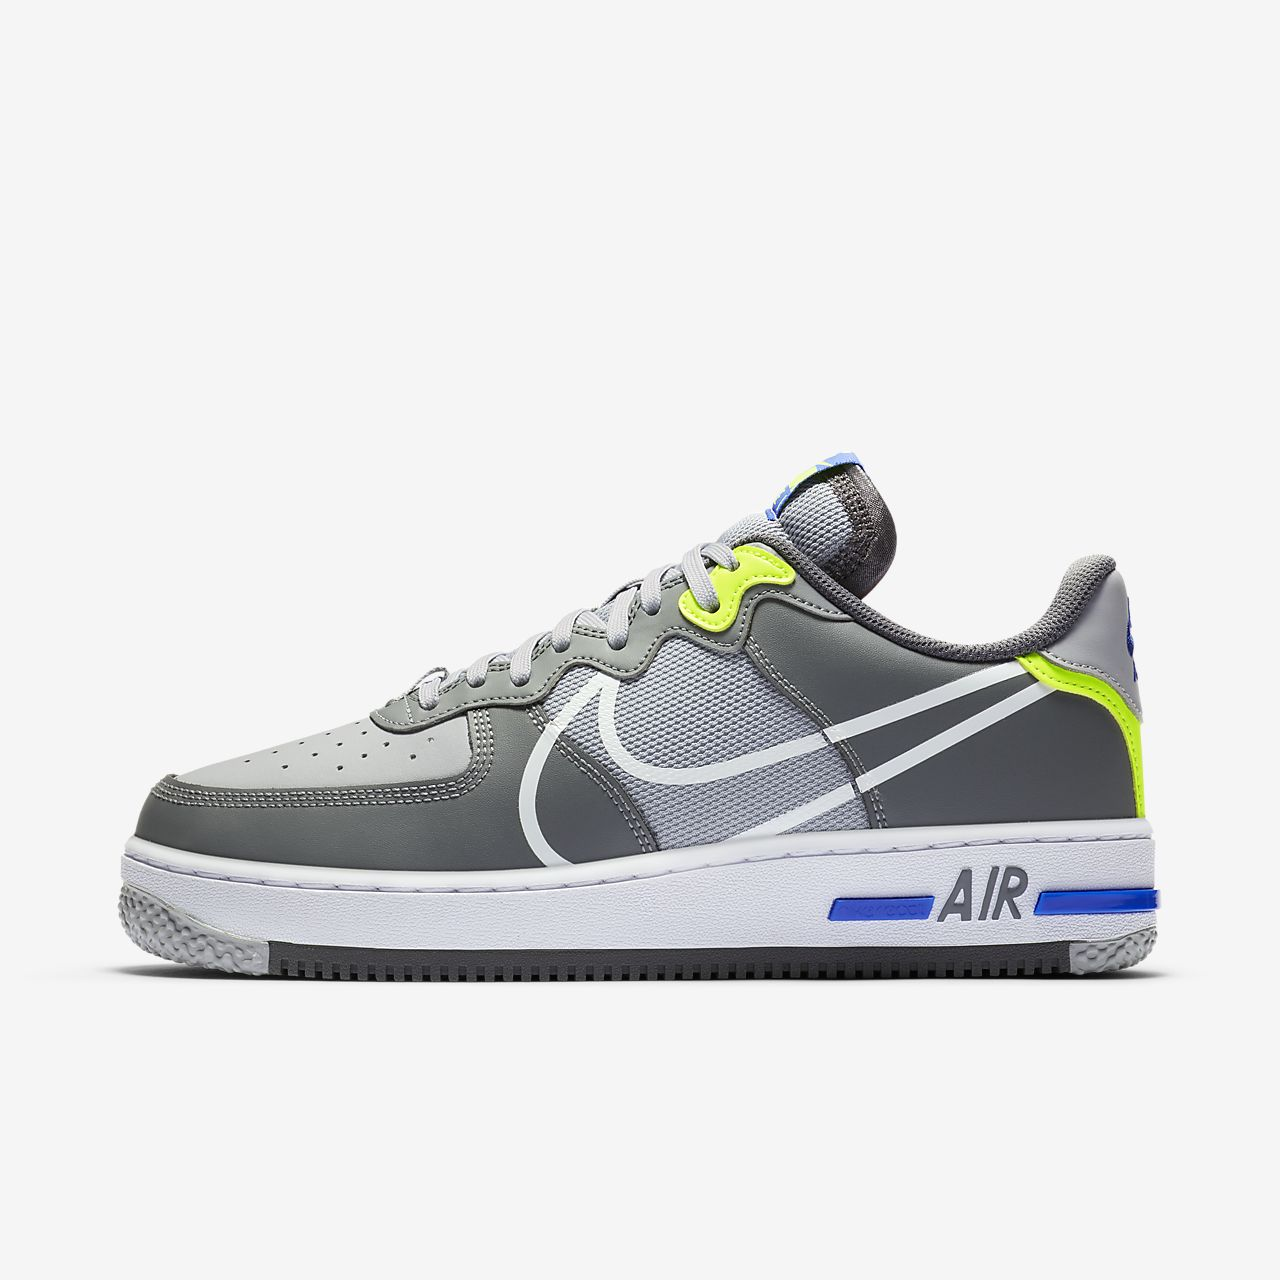 nike air force män låg vit